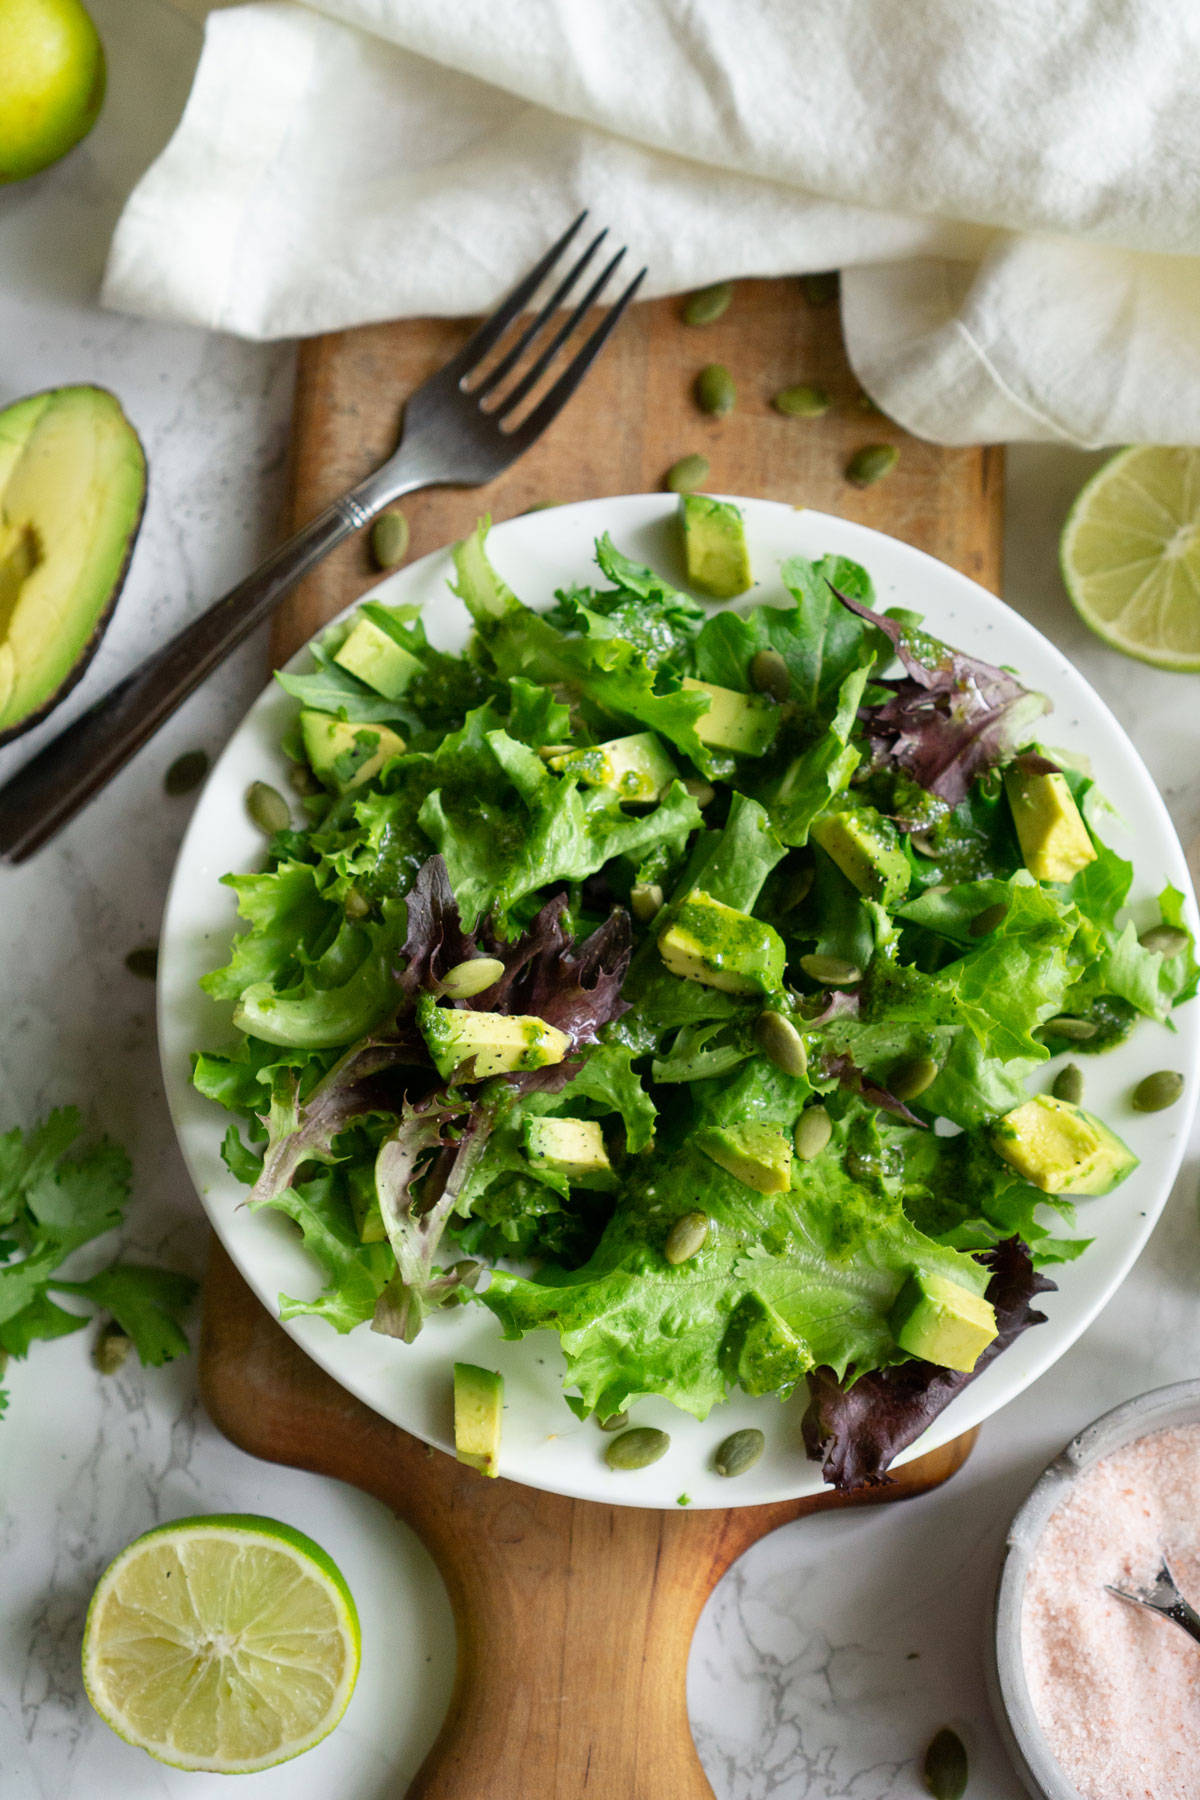 3 Cooling Salads for Summer | Herbal Academy | Don't miss these three cooling salad recipes for summer—all kitchen and taste-bud tested by Ayurvedic practitioner and post author, Greta Kent-Stoll.